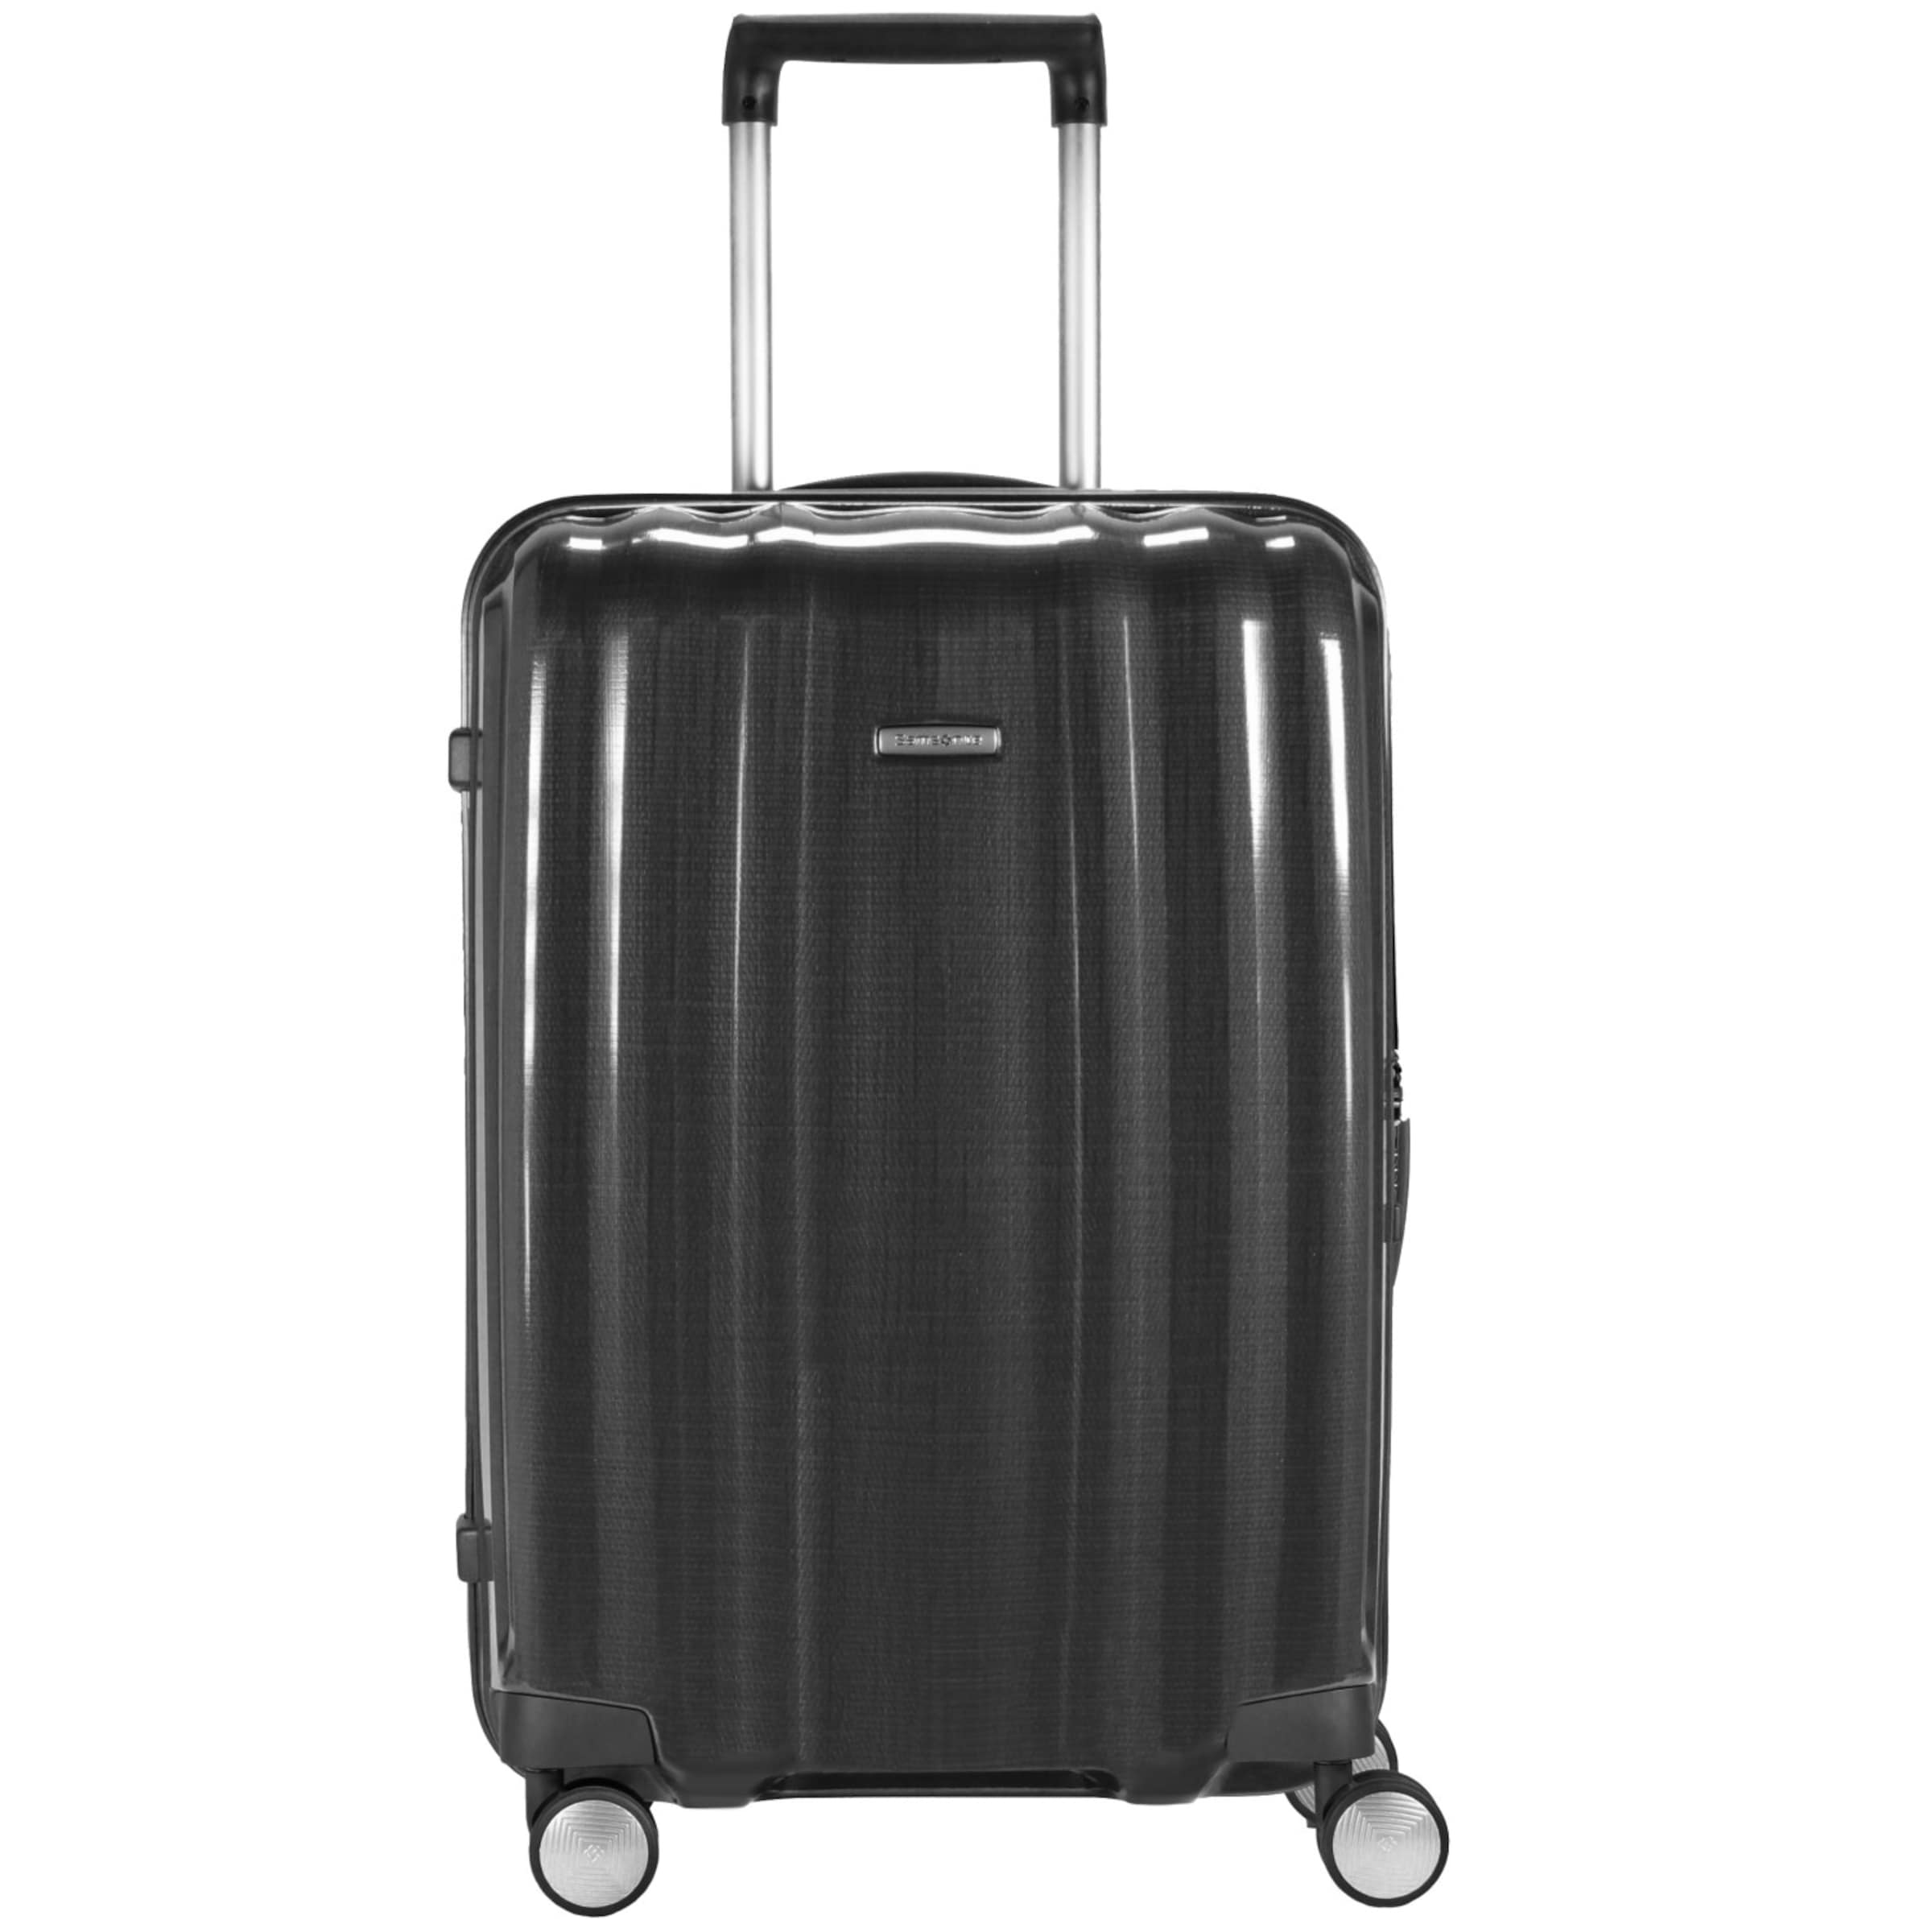 68 'lite Samsonite In Spinner cube Trolley Cm' Graphit ordBeCxW